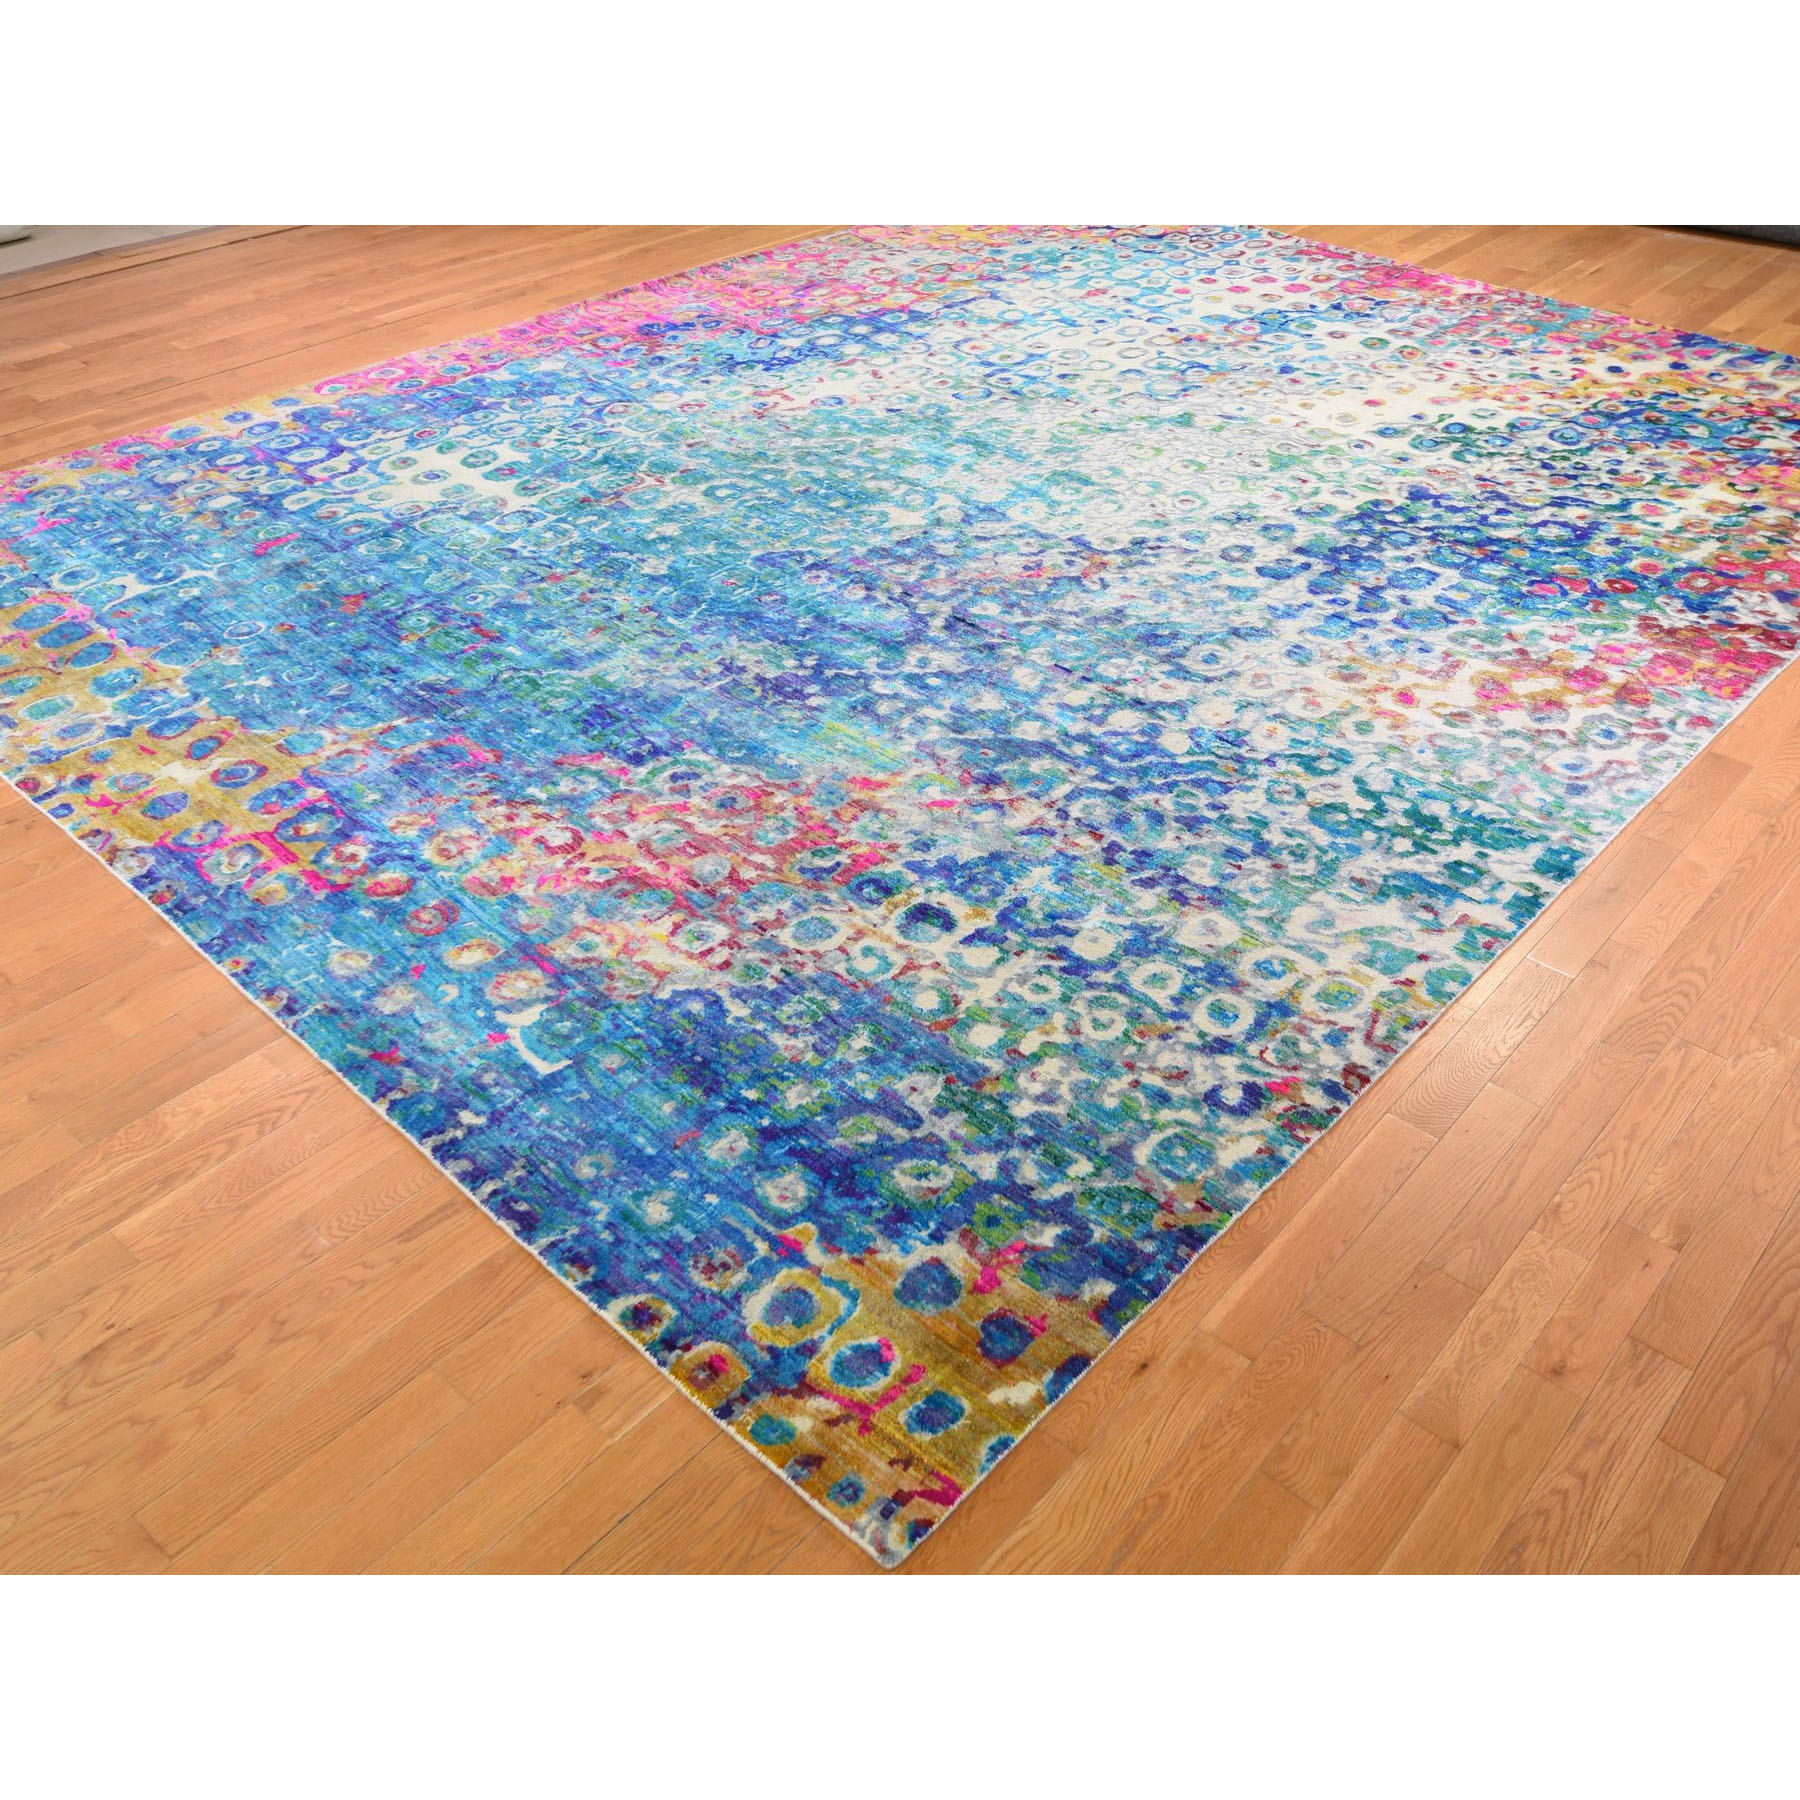 "11'10""x15' THE PEACOCK, Oversized Sari Silk Colorful Hand Knotted Oriental Rug"